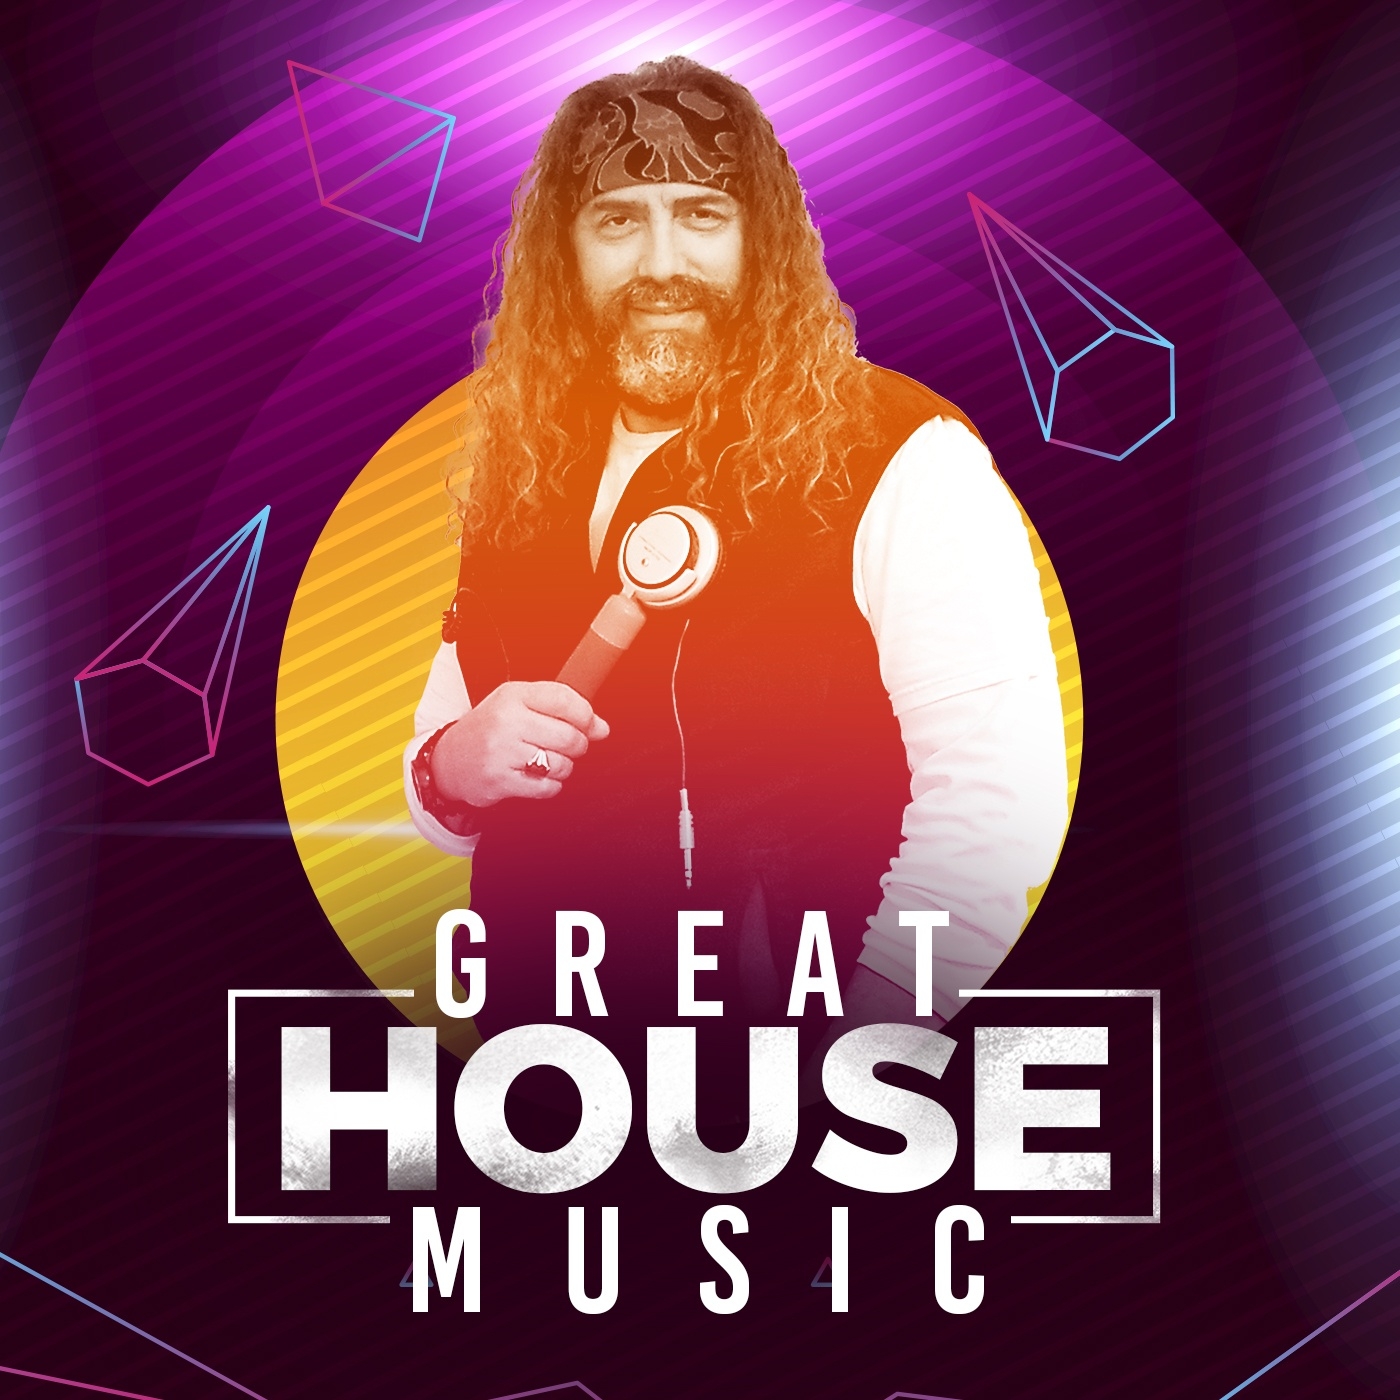 Great House Music